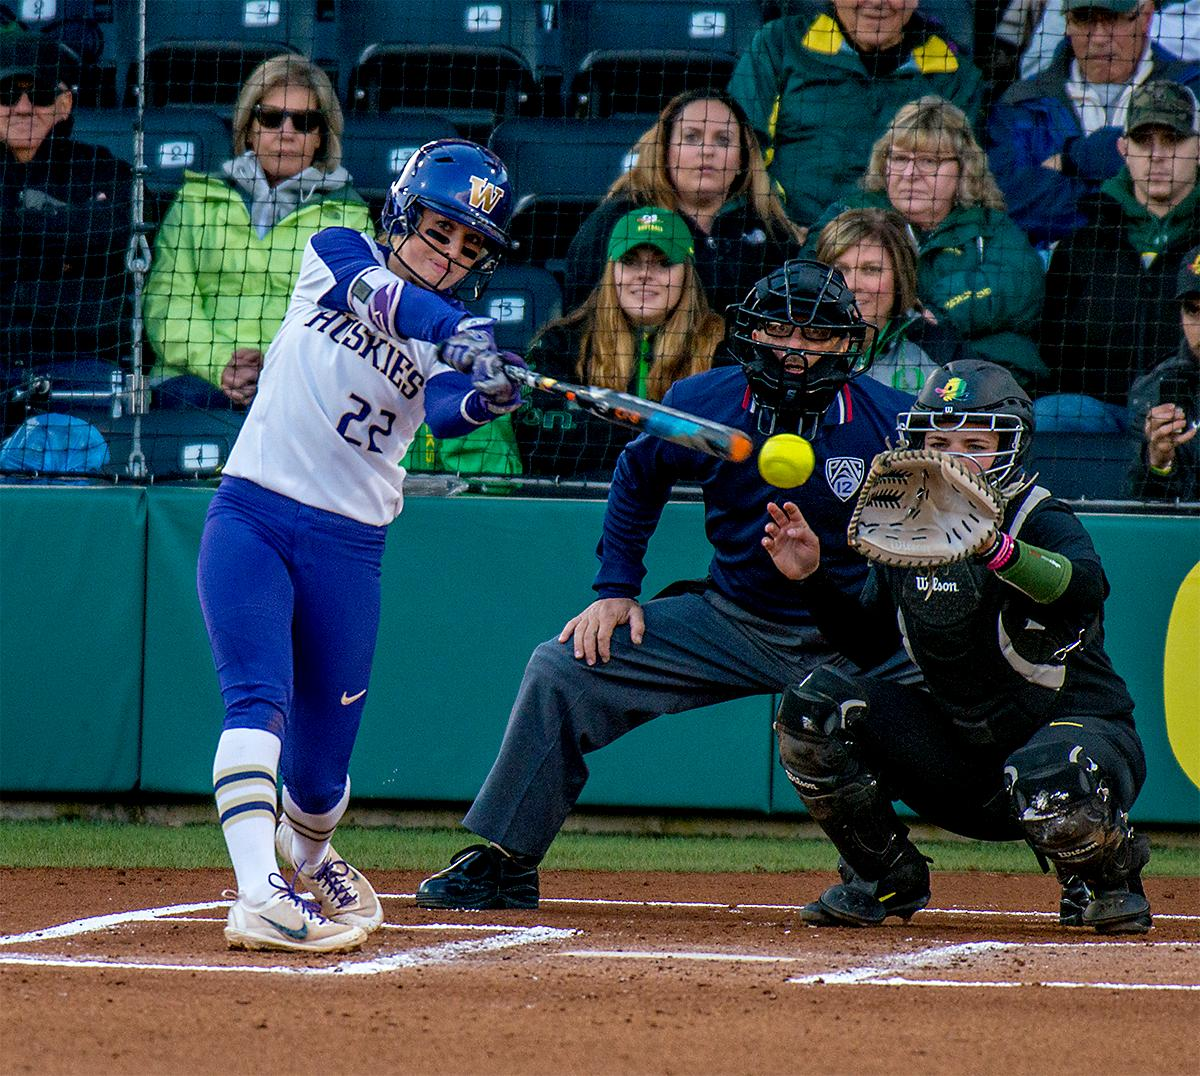 The Huskies' Sis Bates (#22) just barely misses the ball. In Game Two of a three-game series, the University of Oregon Ducks softball team defeated the University of Washington Huskies 4-1 Friday night in Jane Sanders Stadium. Danica Mercado (#2), Alexis Mack (#10) and Mia Camuso (#7) all scored in the win, Mack twice. The Ducks play the Huskies for the tie breaker on Saturday with the first pitch at noon. Photo by August Frank, Oregon News Lab